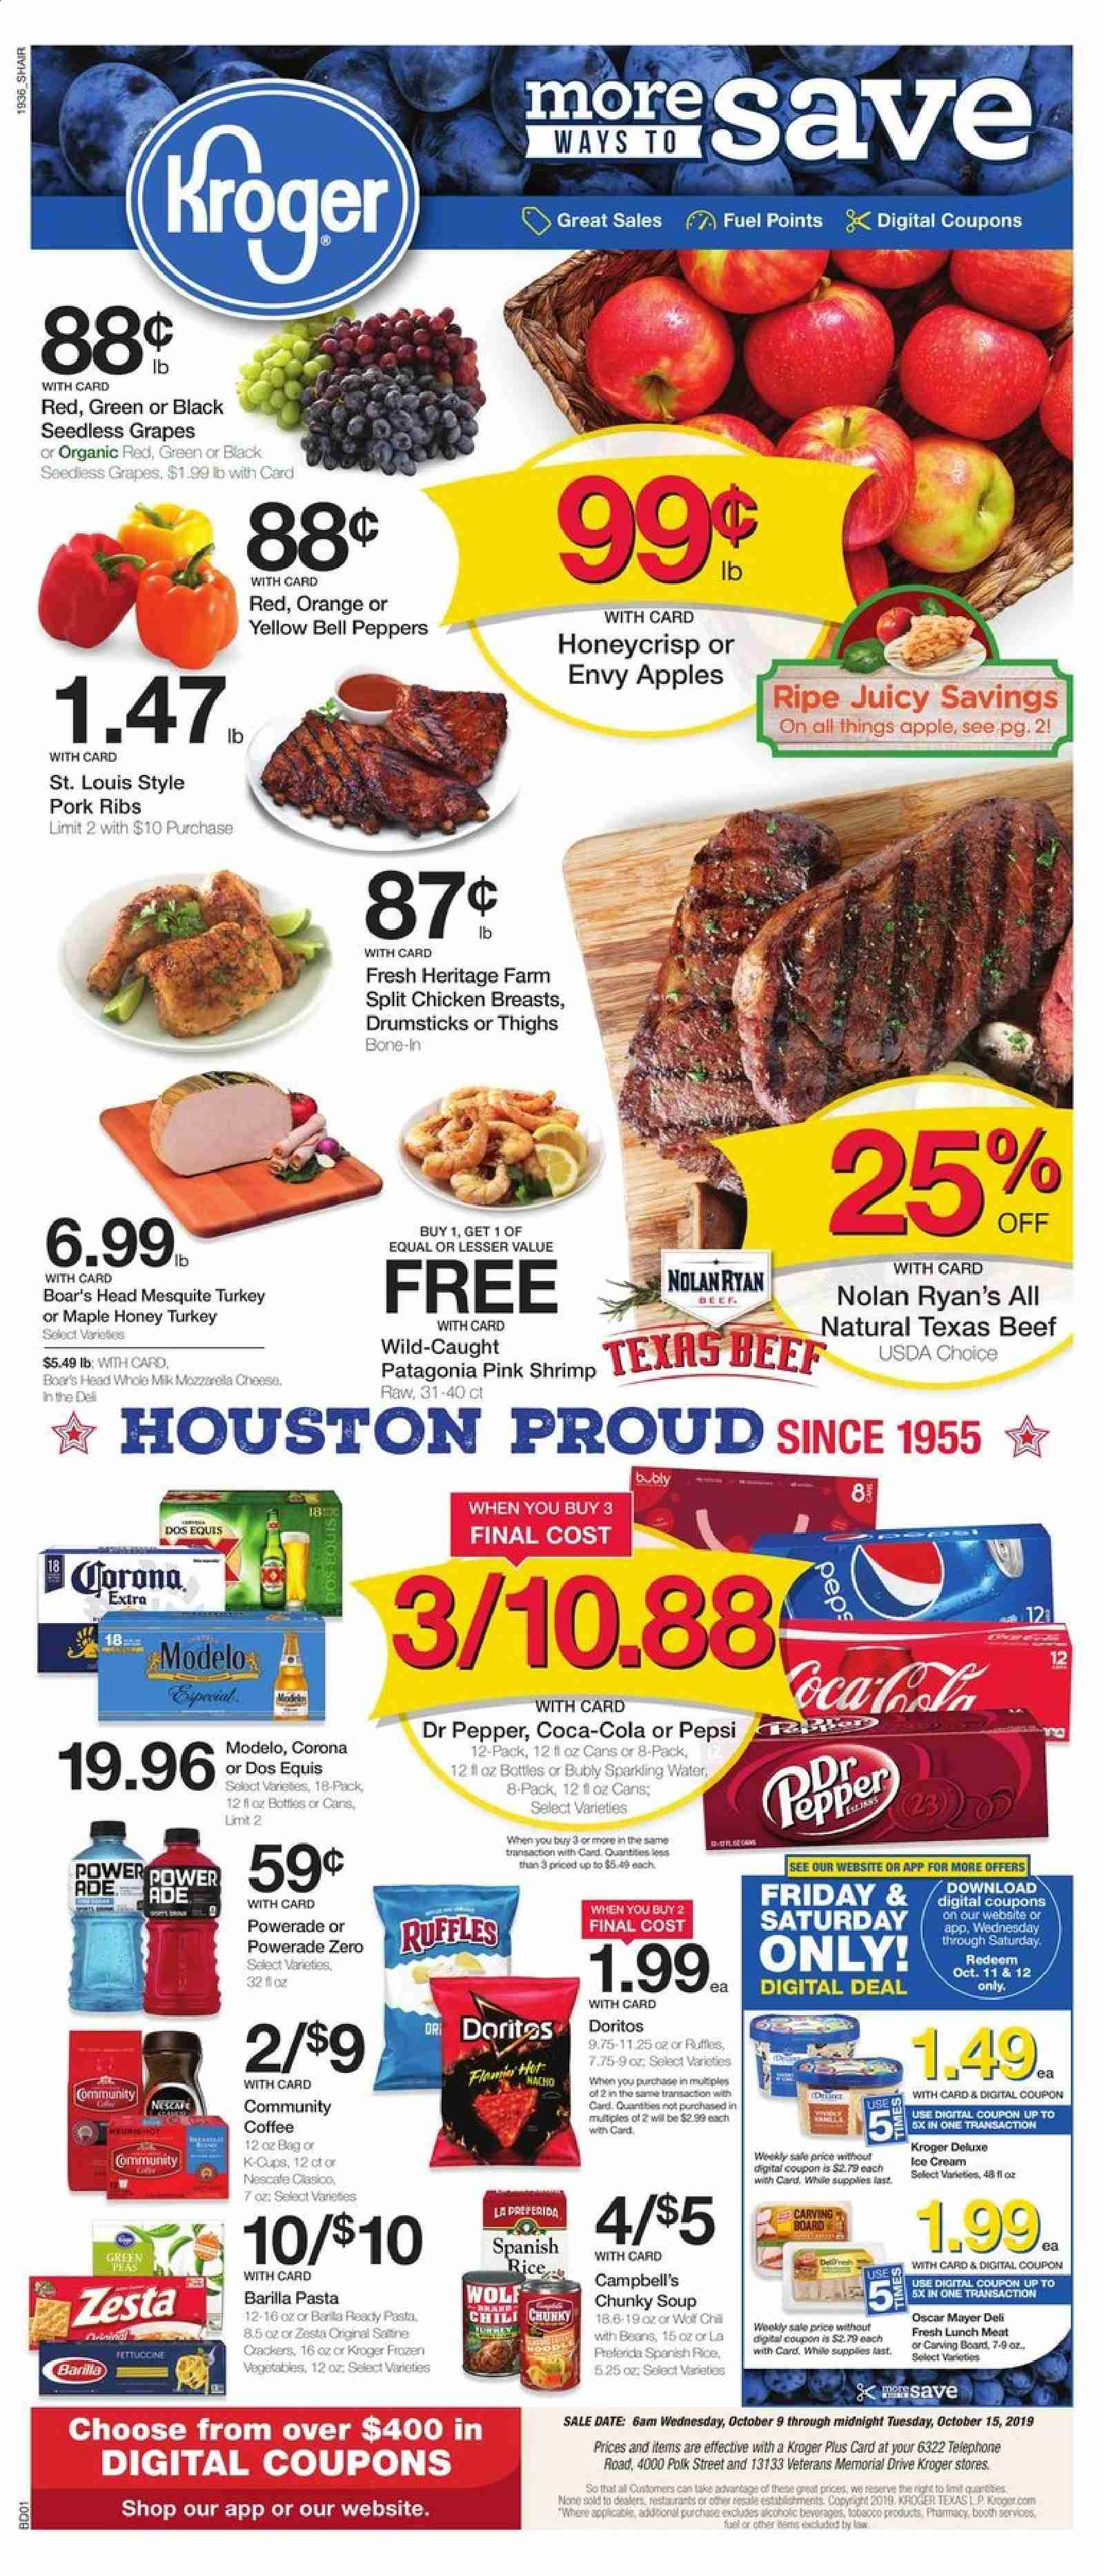 Kroger Flyer - 10.09.2019 - 10.15.2019 - Sales products - apples, beans, beef meat, bell peppers, campbell's, coca-cola, coffee, crackers, doritos, frozen, frozen vegetables, fuel, grapes, lunchmeat, rice, seedless grapes, shrimp, turkey, head, honey, ice cream, polk, pork meat, pork ribs, powerade, chicken, chicken breast, pepsi, orange, organic, cheese, soup, vegetables, pepper, sparkling water, pasta, board, ribs, corona, dos equis, dr. pepper, peppers, meat, cream. Page 1.